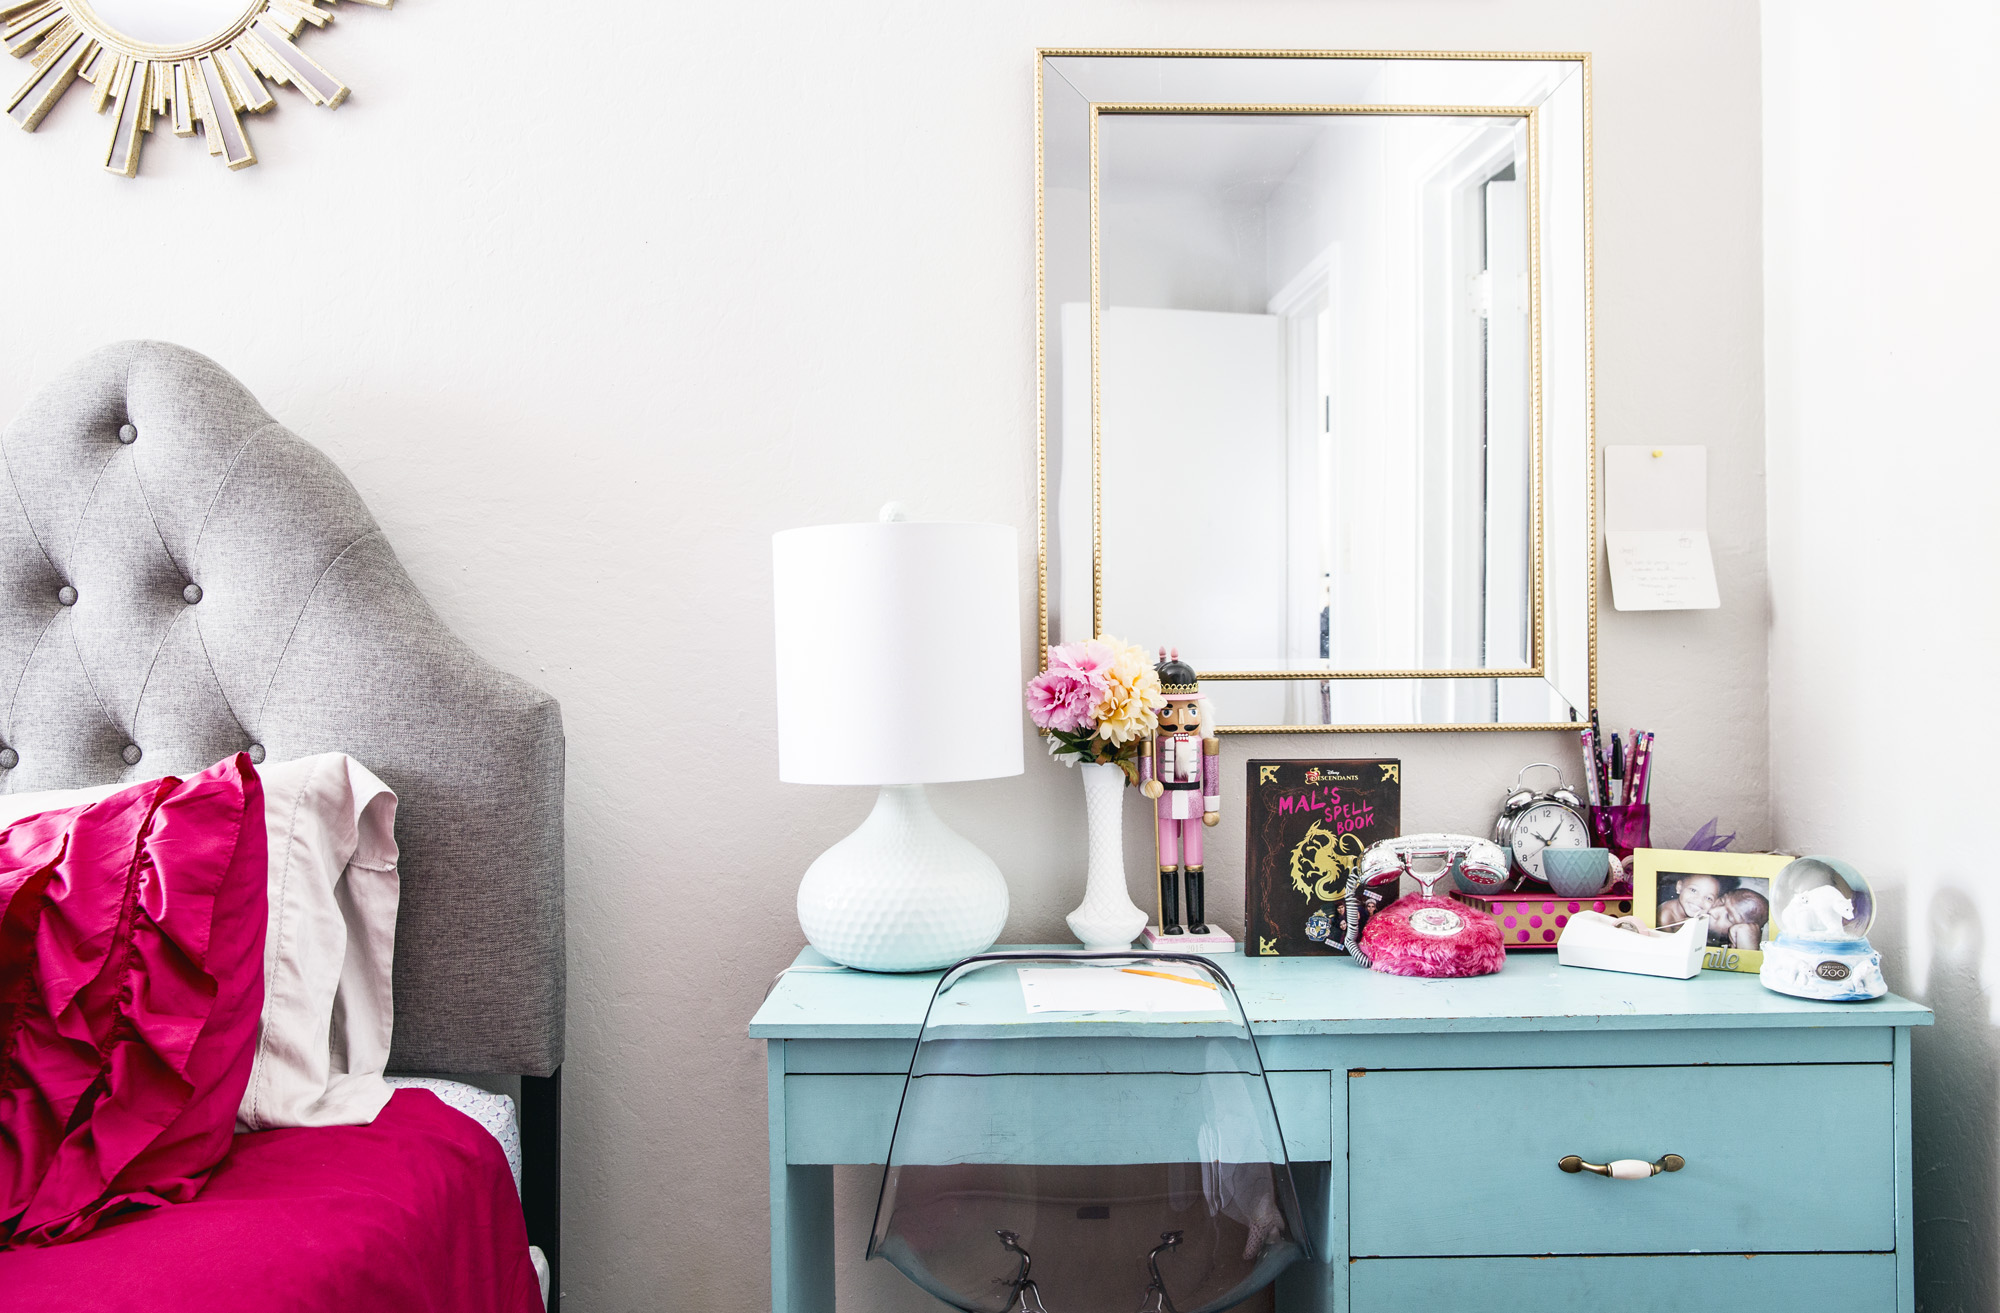 For Her Daughters Room Above Interior Designer Justina White Chose A Tufted Headboard From Wayfair And Painted Vintage Desk Turquoise Blue